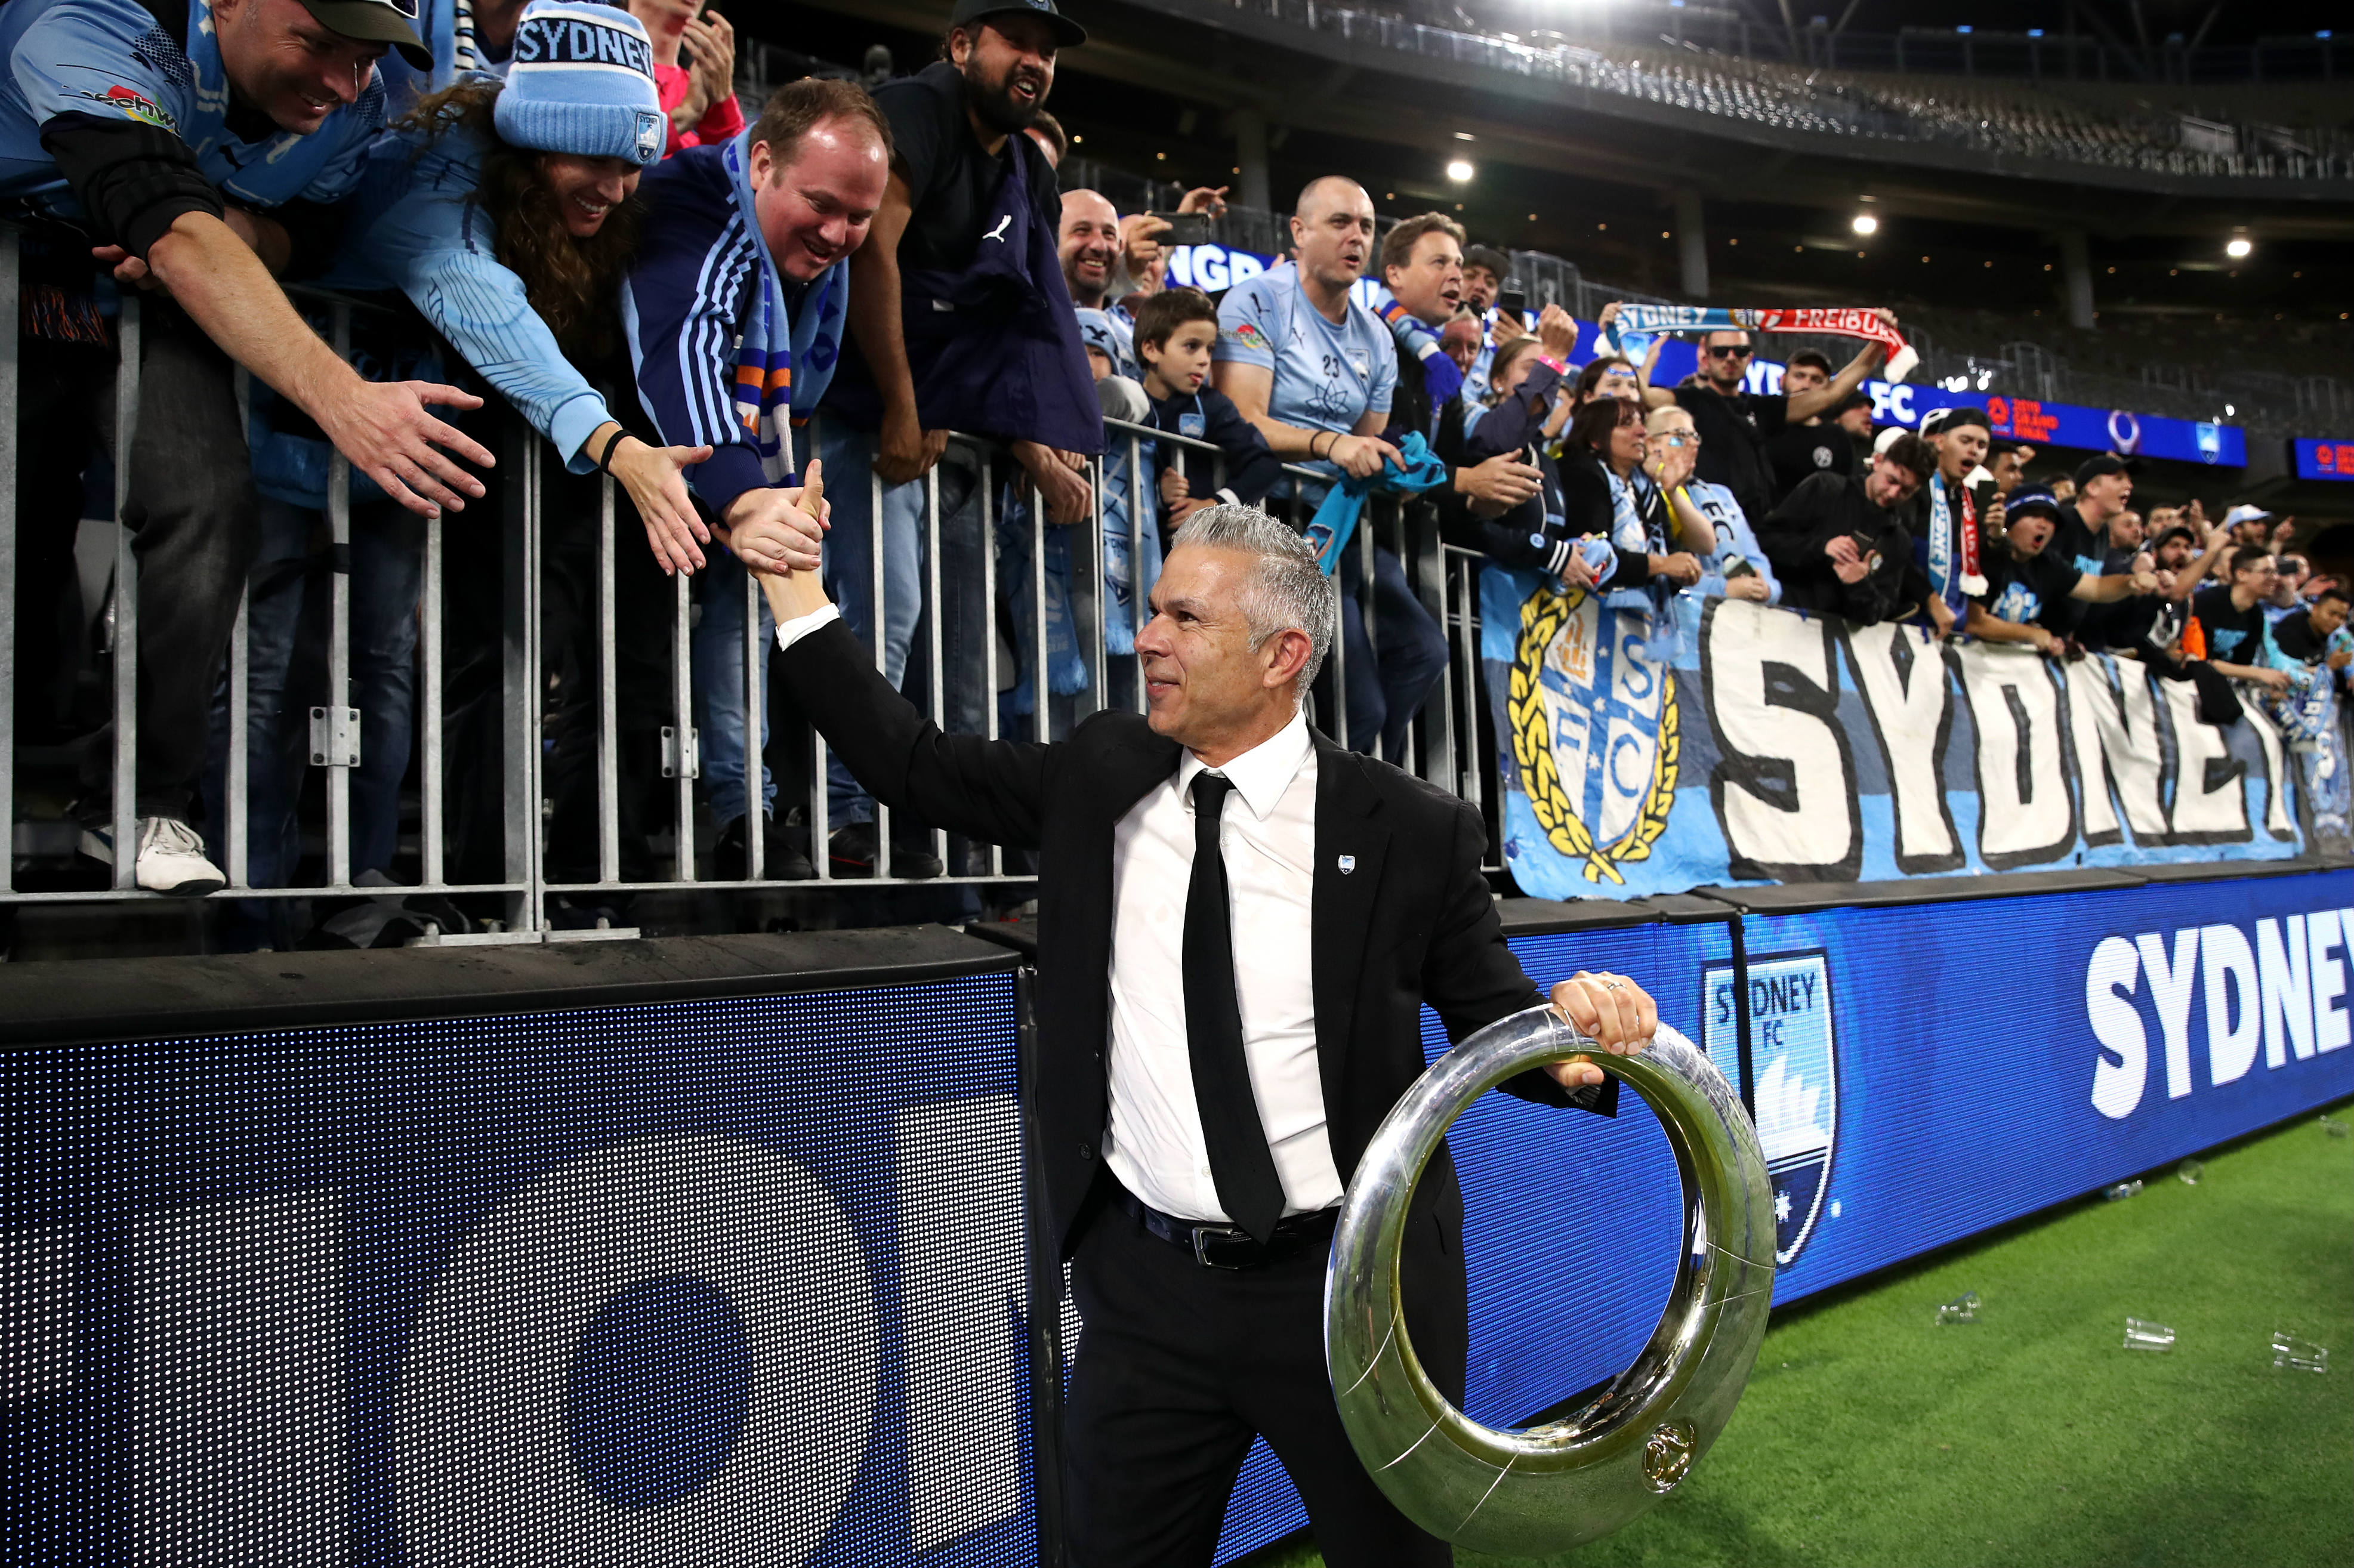 Sky Blues boss Steve Corica with the fans after a dream rookie season as head coach